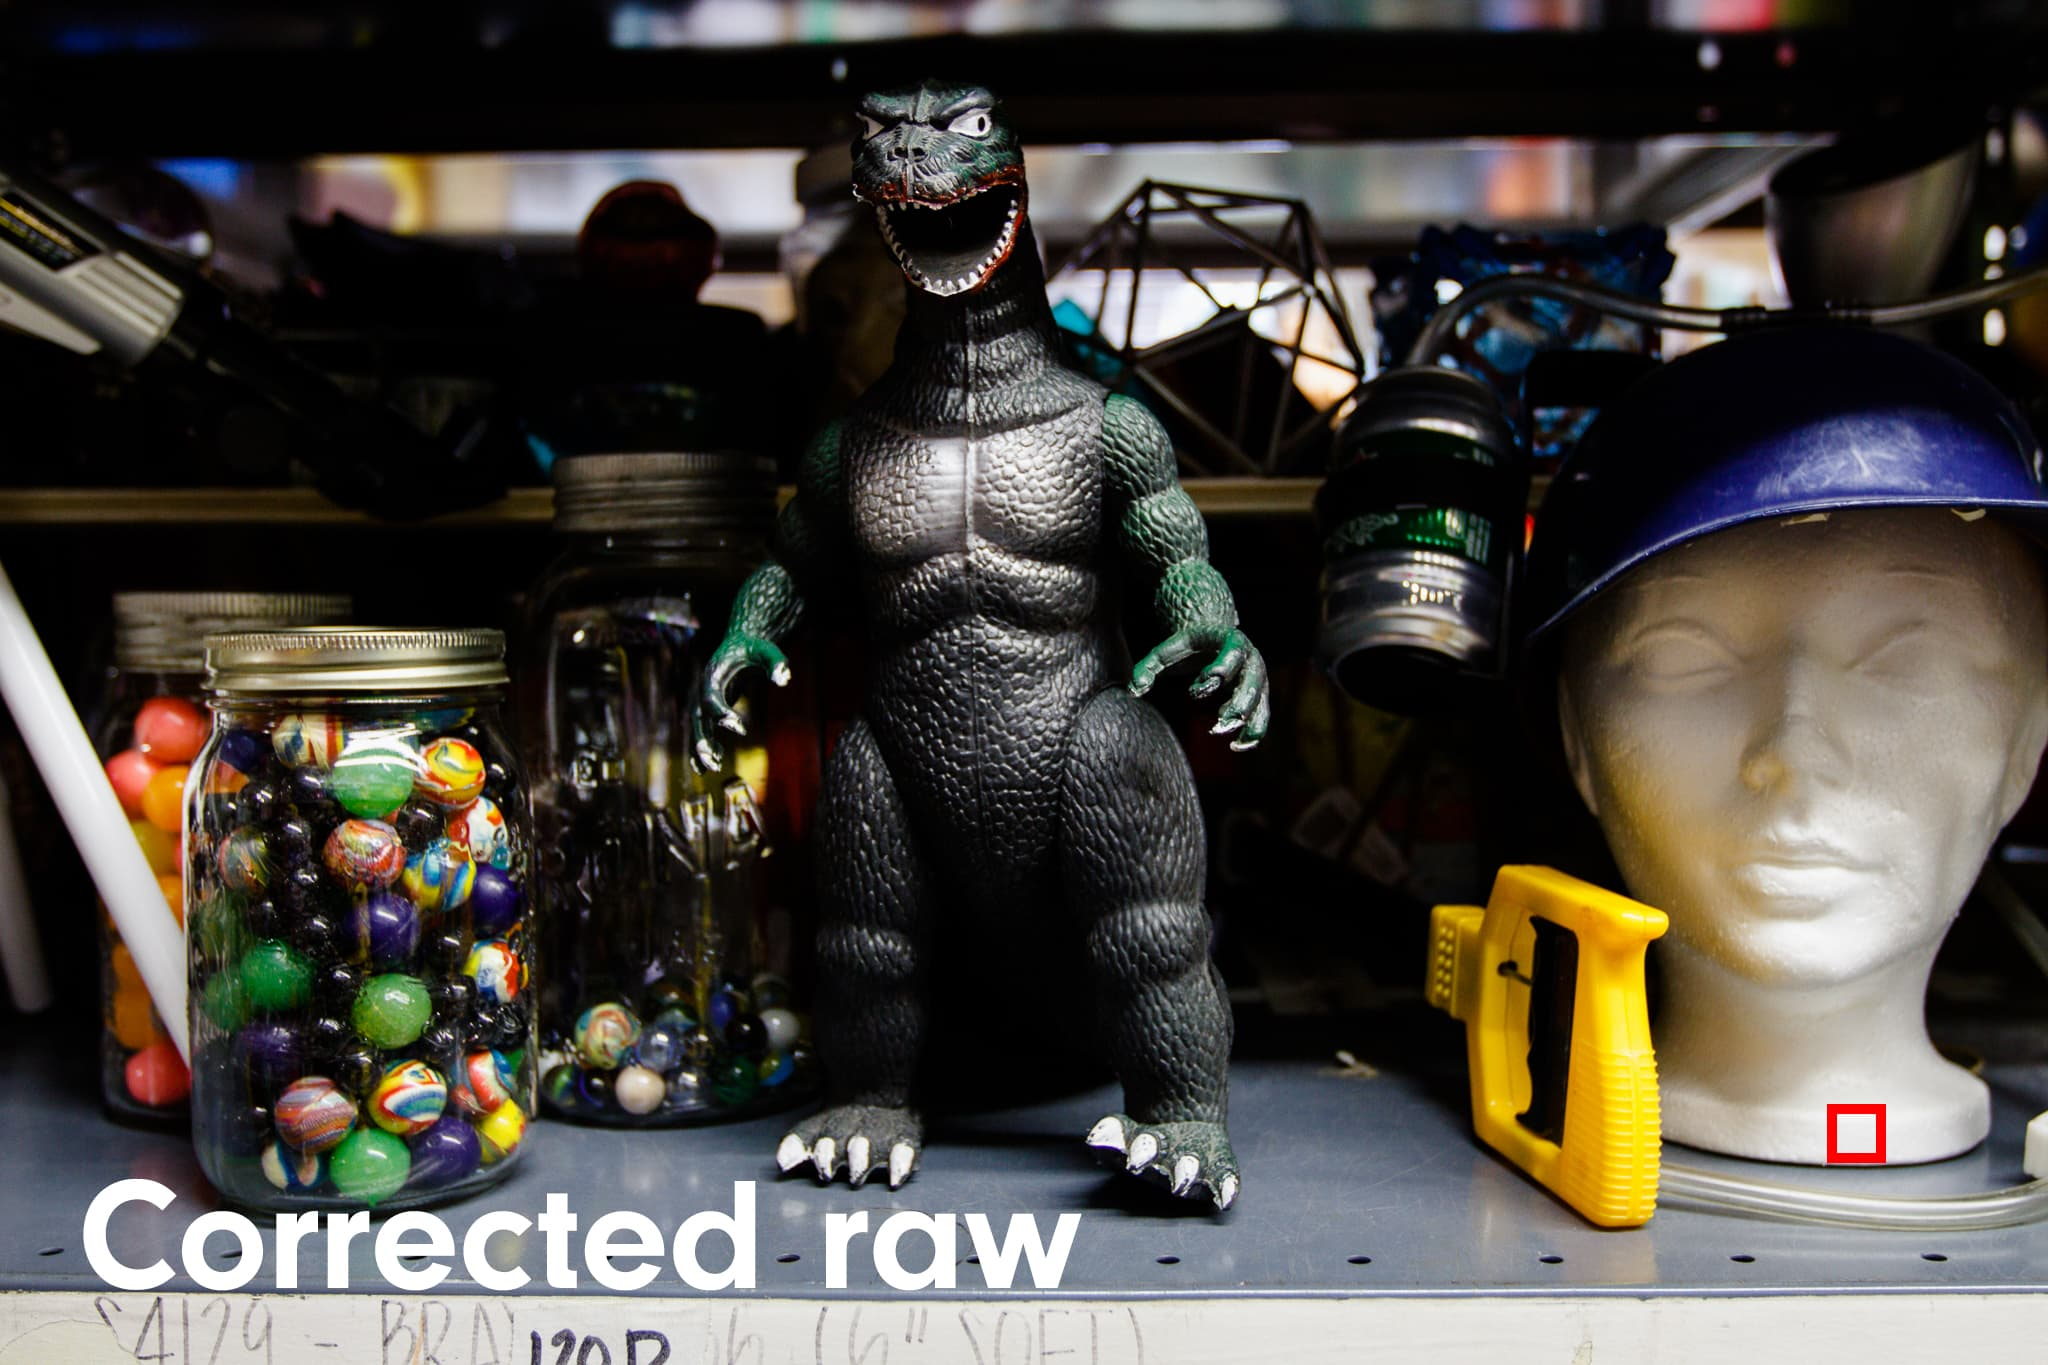 Godzilla toy in craft shop showing raw file whose white balance was corrected.